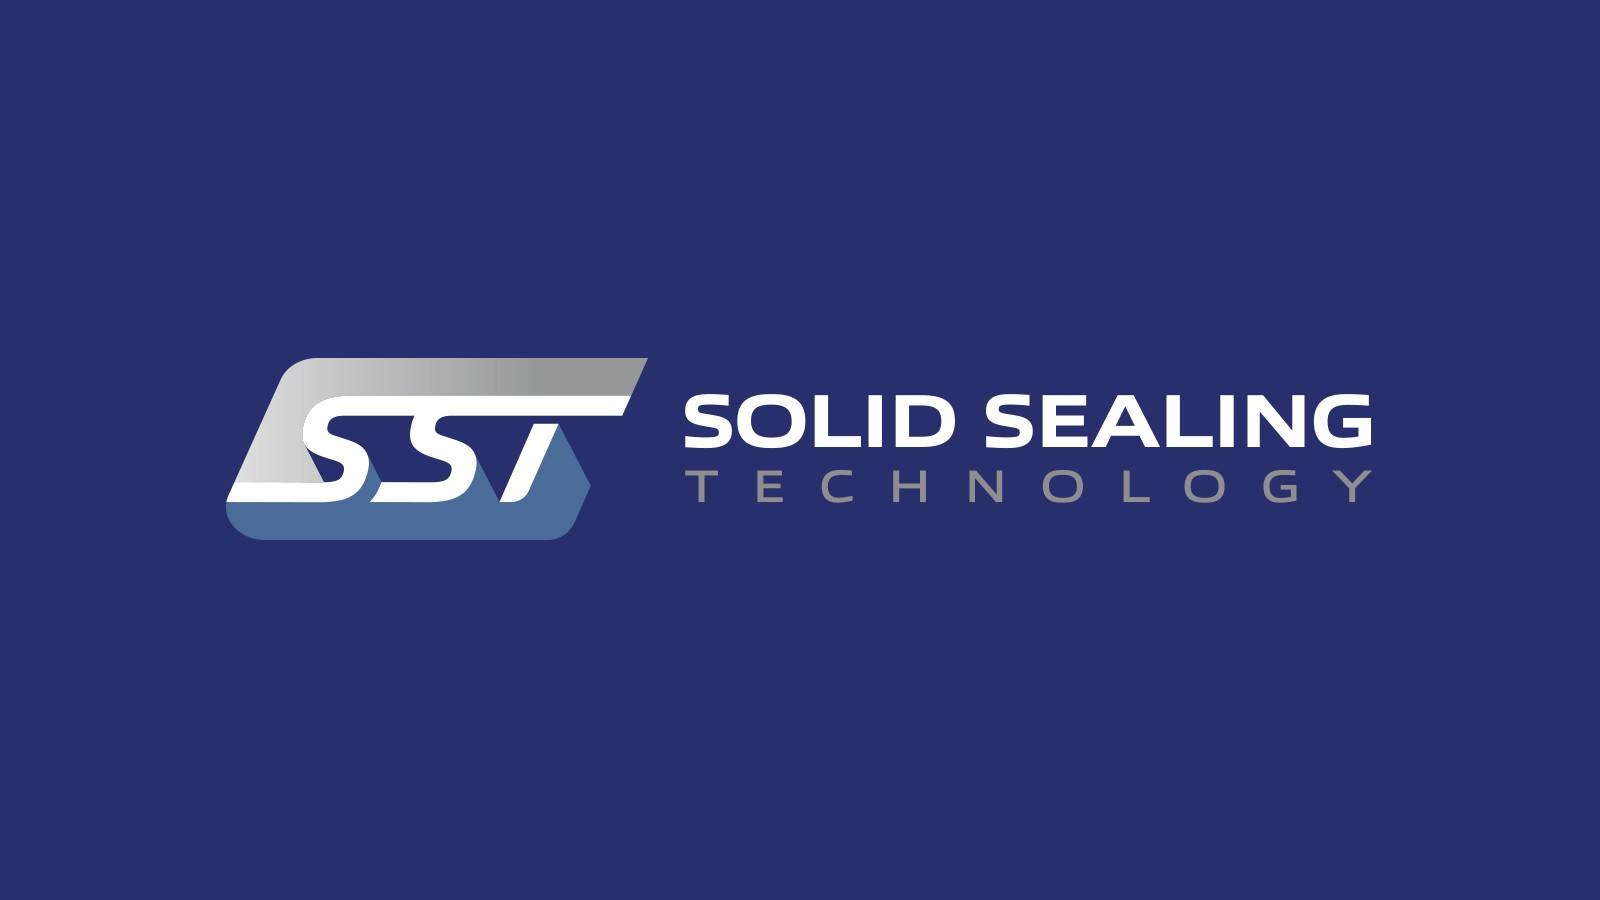 Solid Sealing Technology